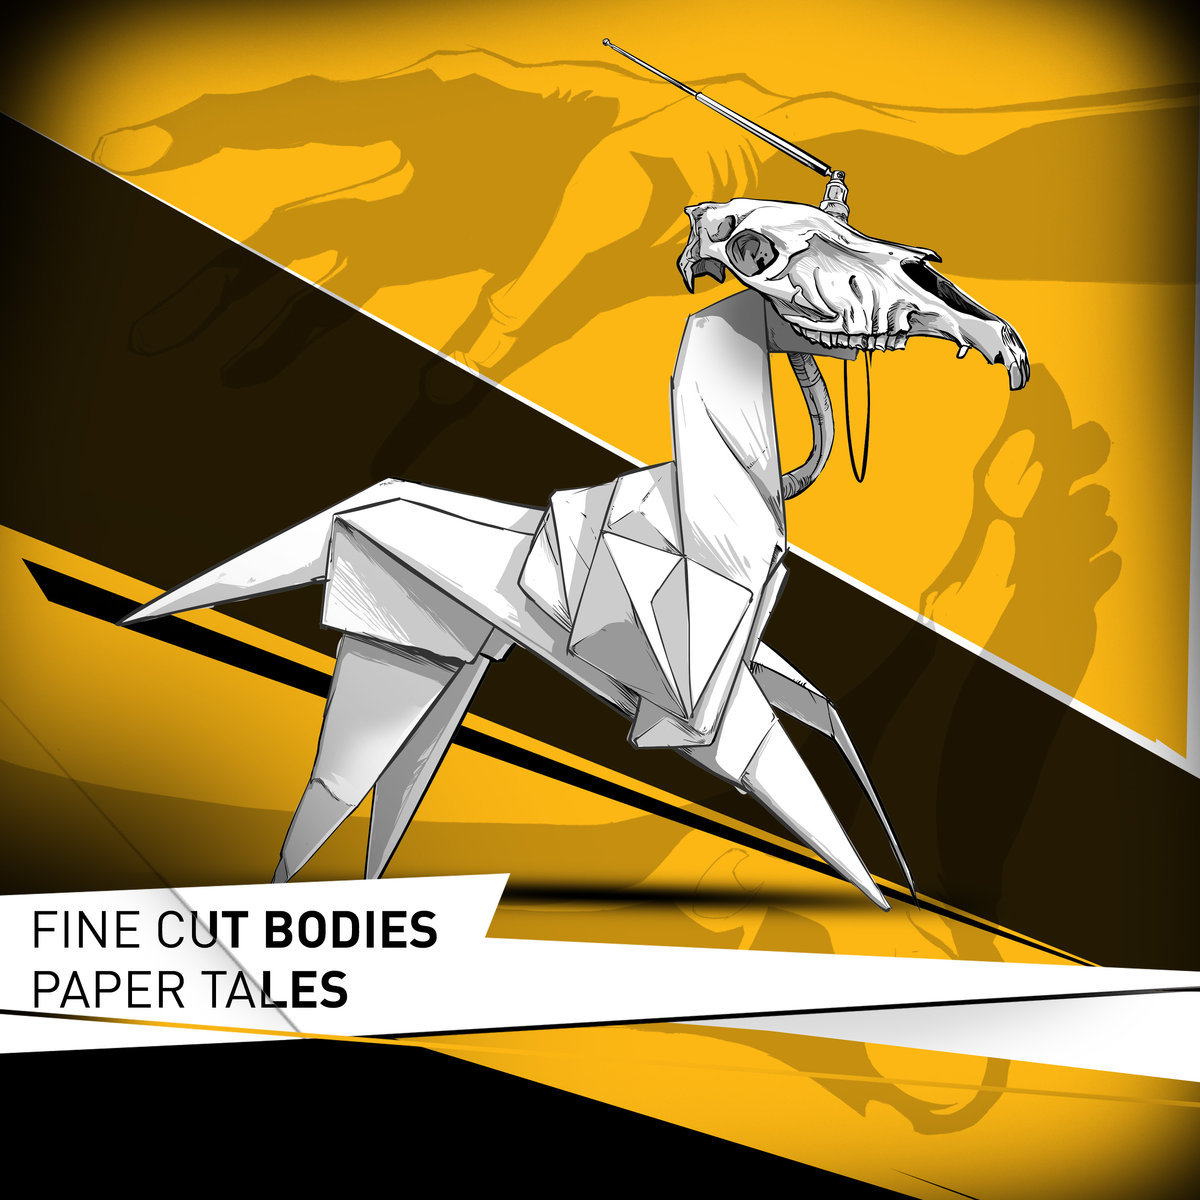 Fine Cut Bodies - Paper Tales (artwork)